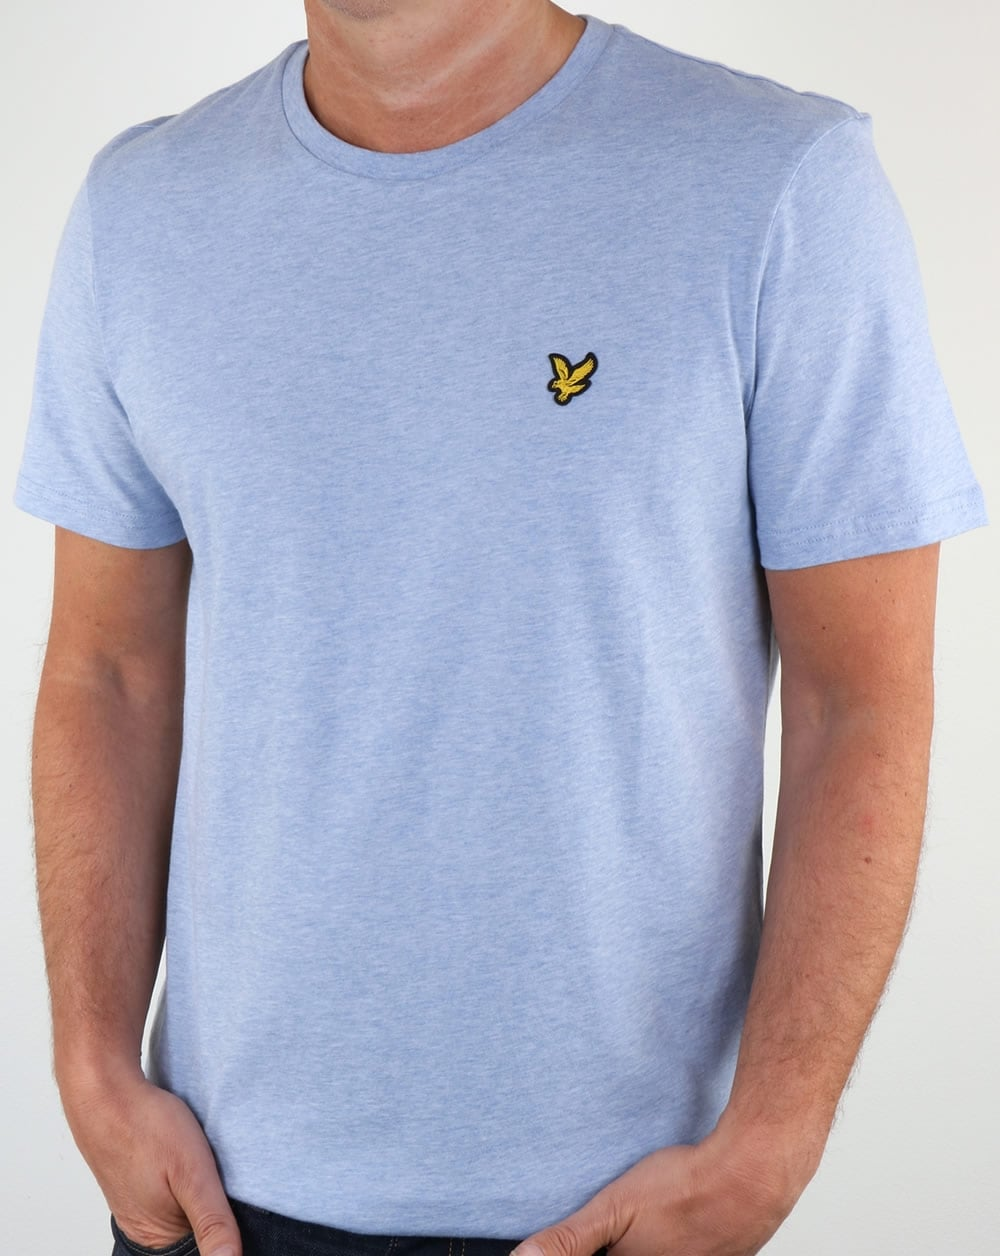 Lyle And Scott T Shirt Blue Marl Lyle And Scott From 80s